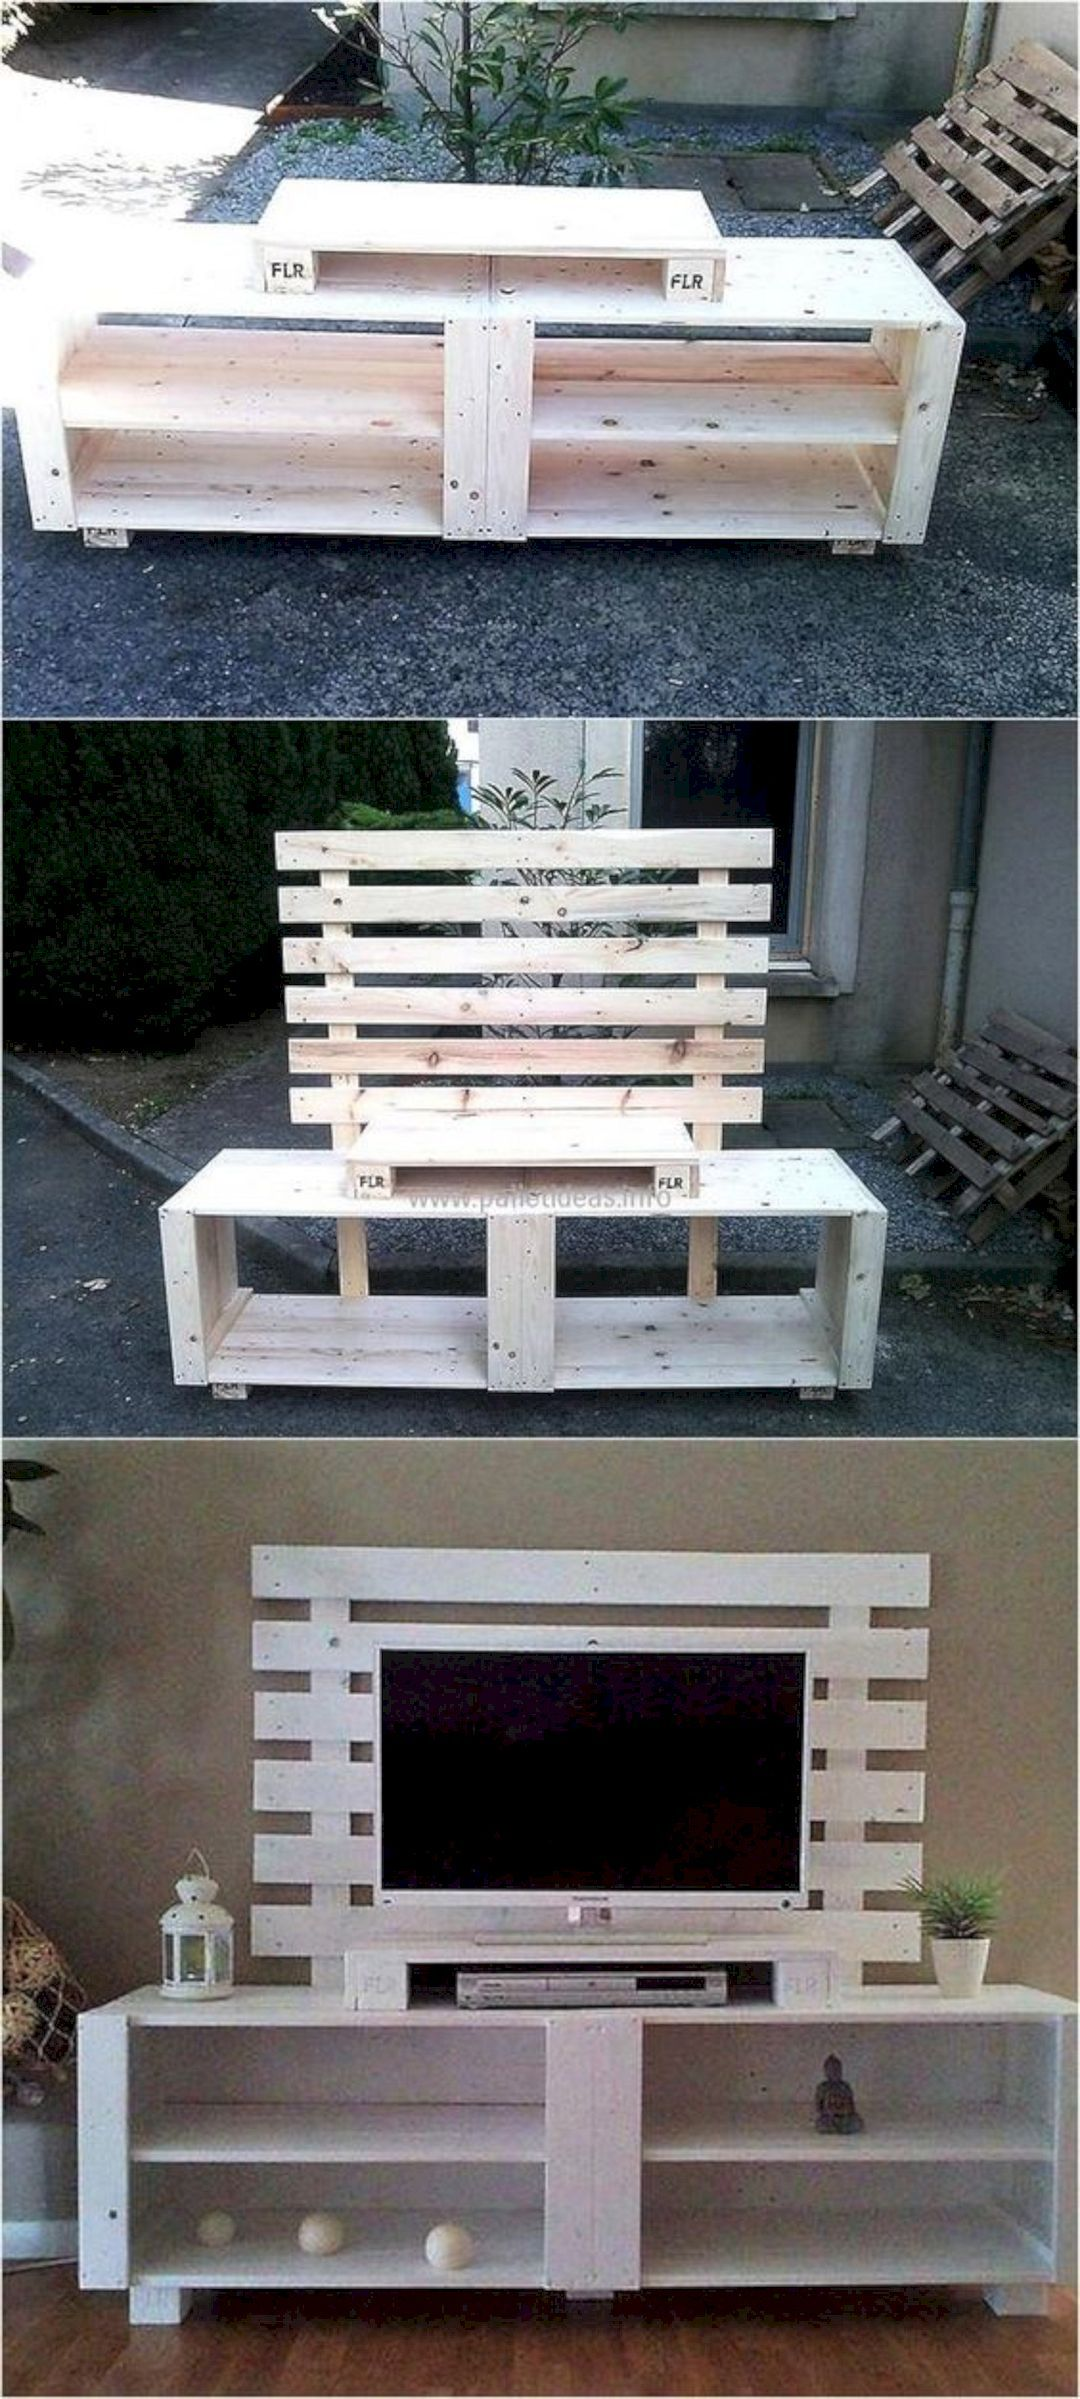 Wood Skid Furniture. 17 Excellent And Creative Ideas For Pallet Furniture  Wood Skid